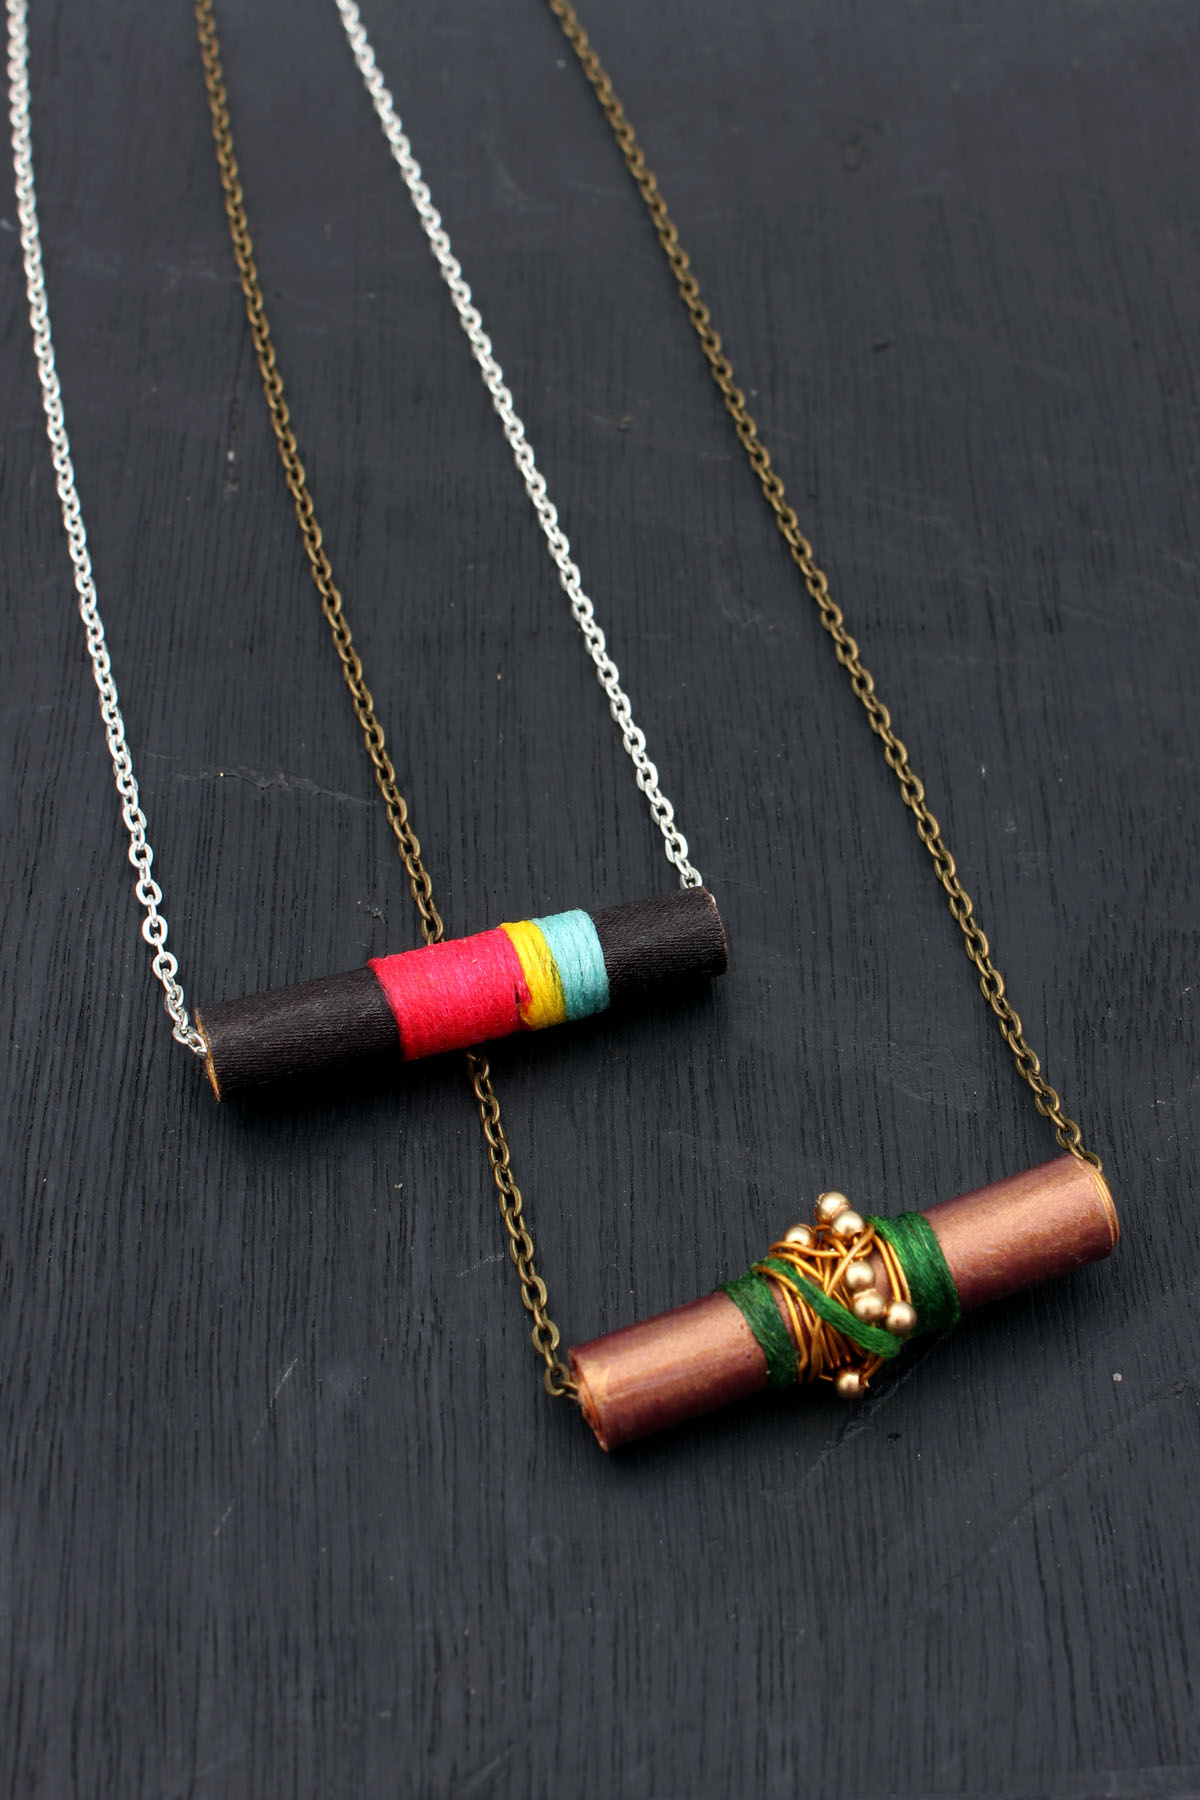 necklaces diy cord leather necklace easy neclaces